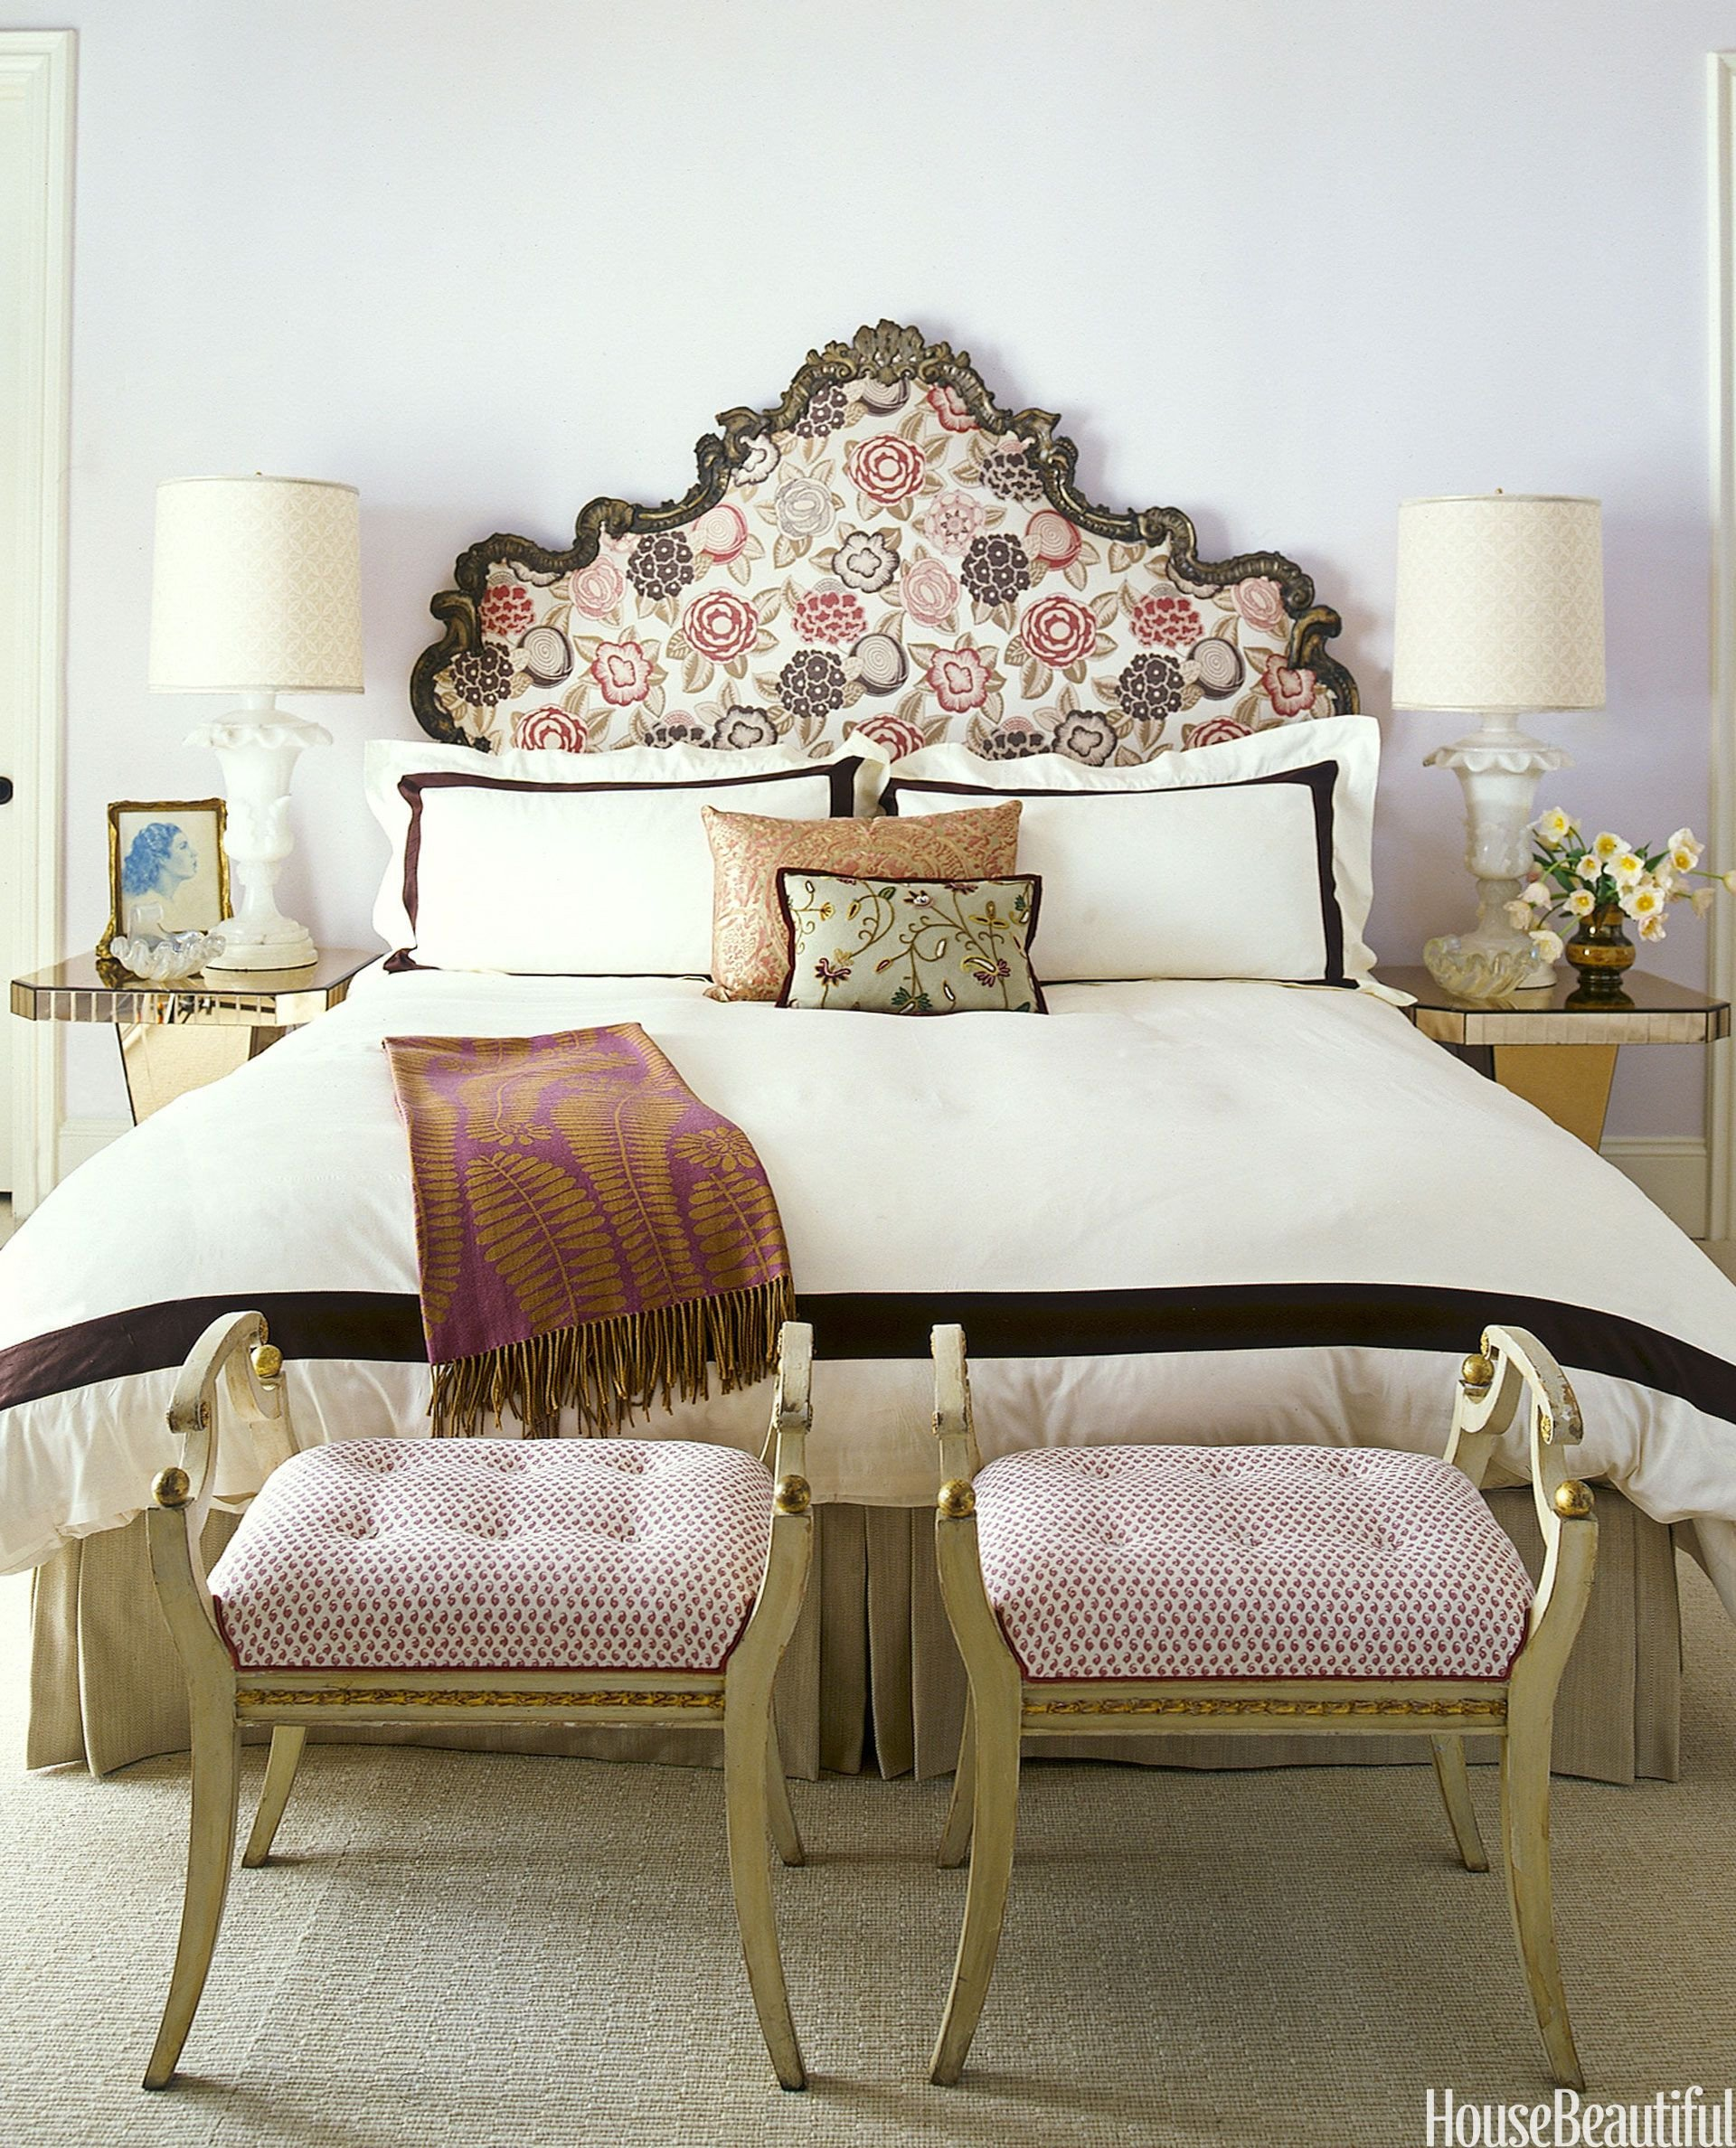 Mint Green Bedroom Decorating Ideas Awesome Red and White Decor Romantic Decorating Ideas